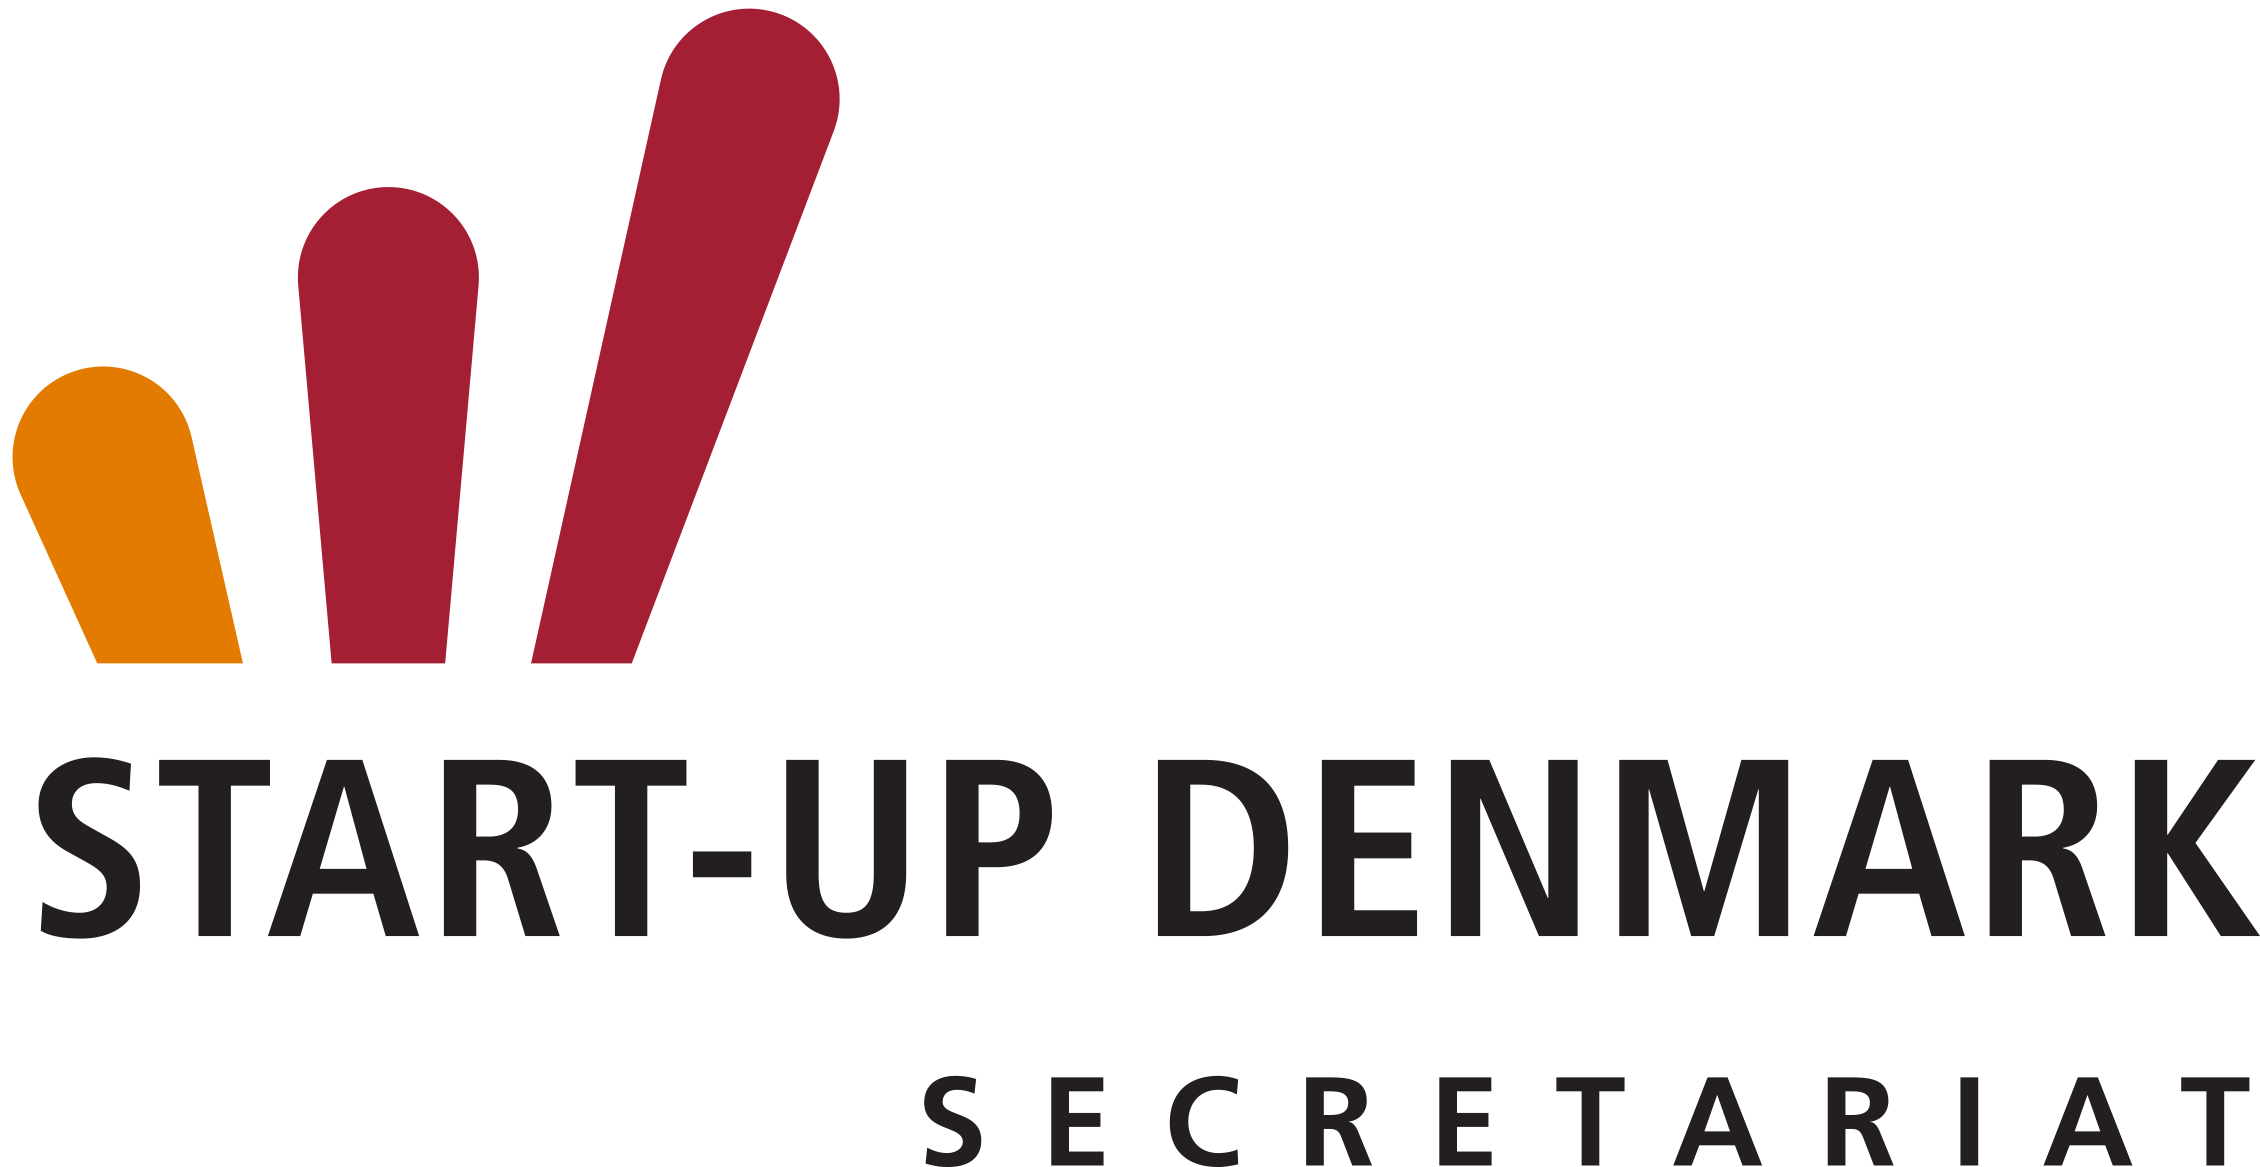 Start-up Denmark Secretariat